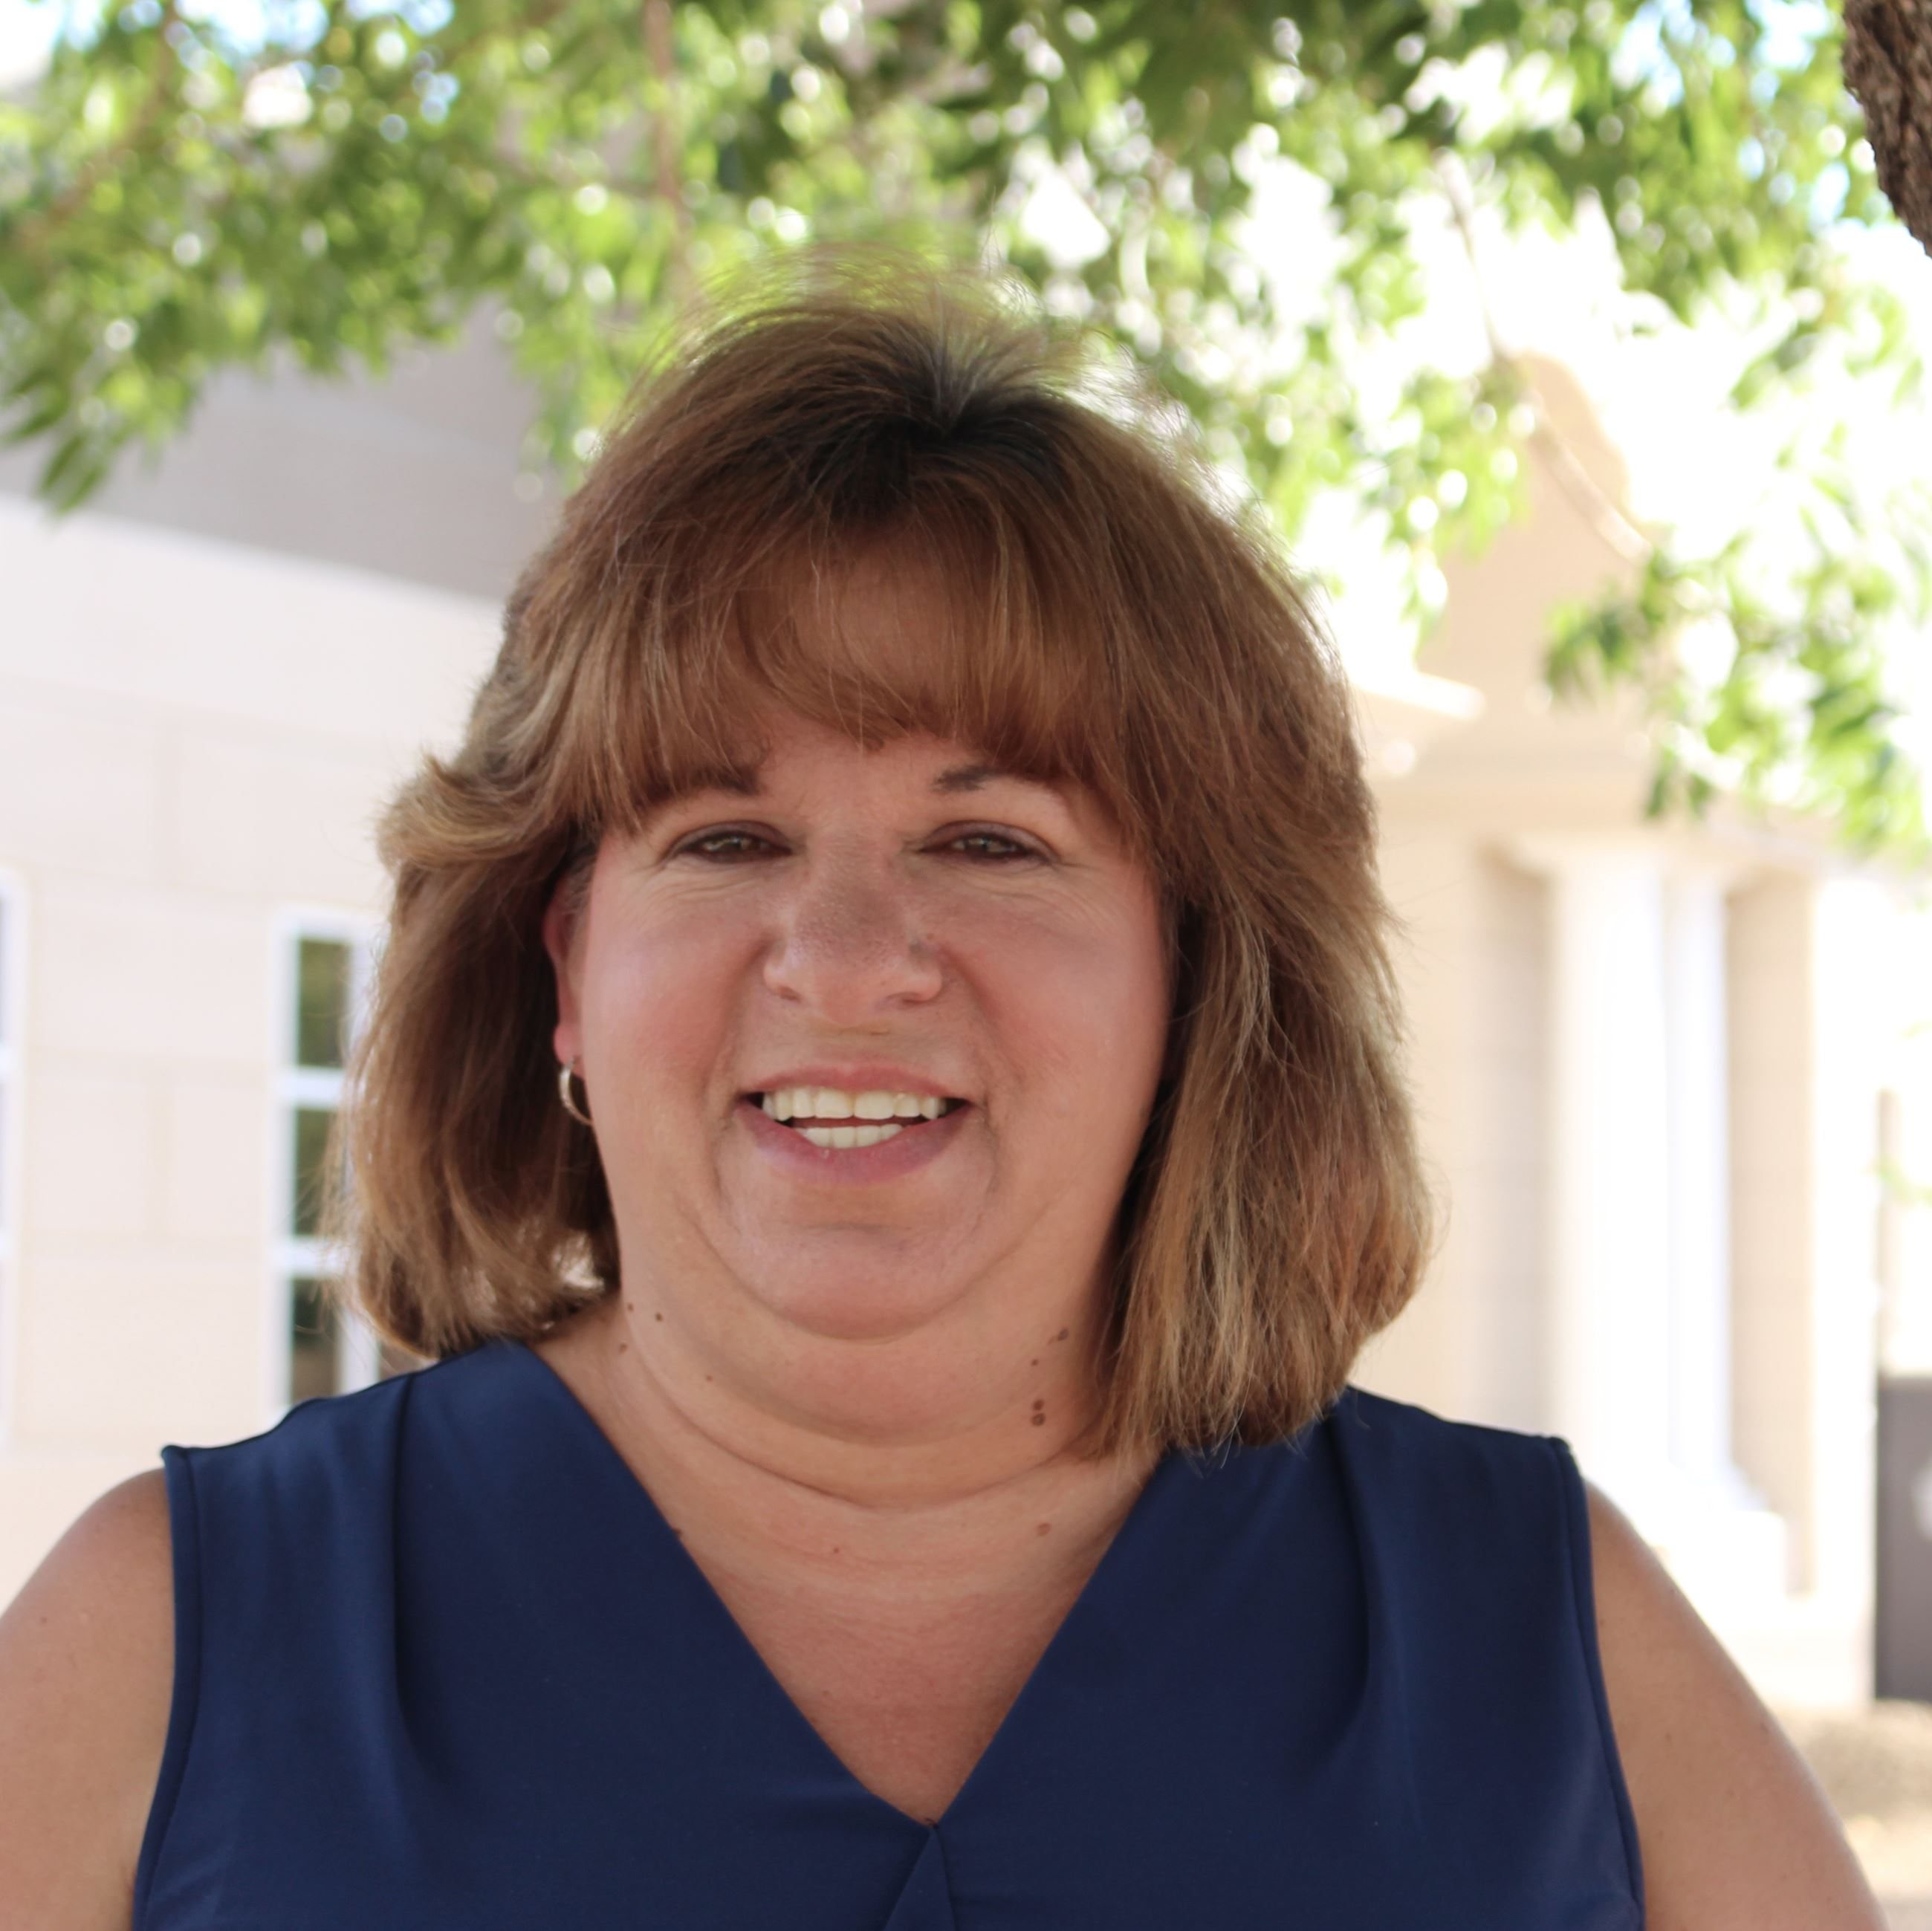 Susan L. Payne, District 3